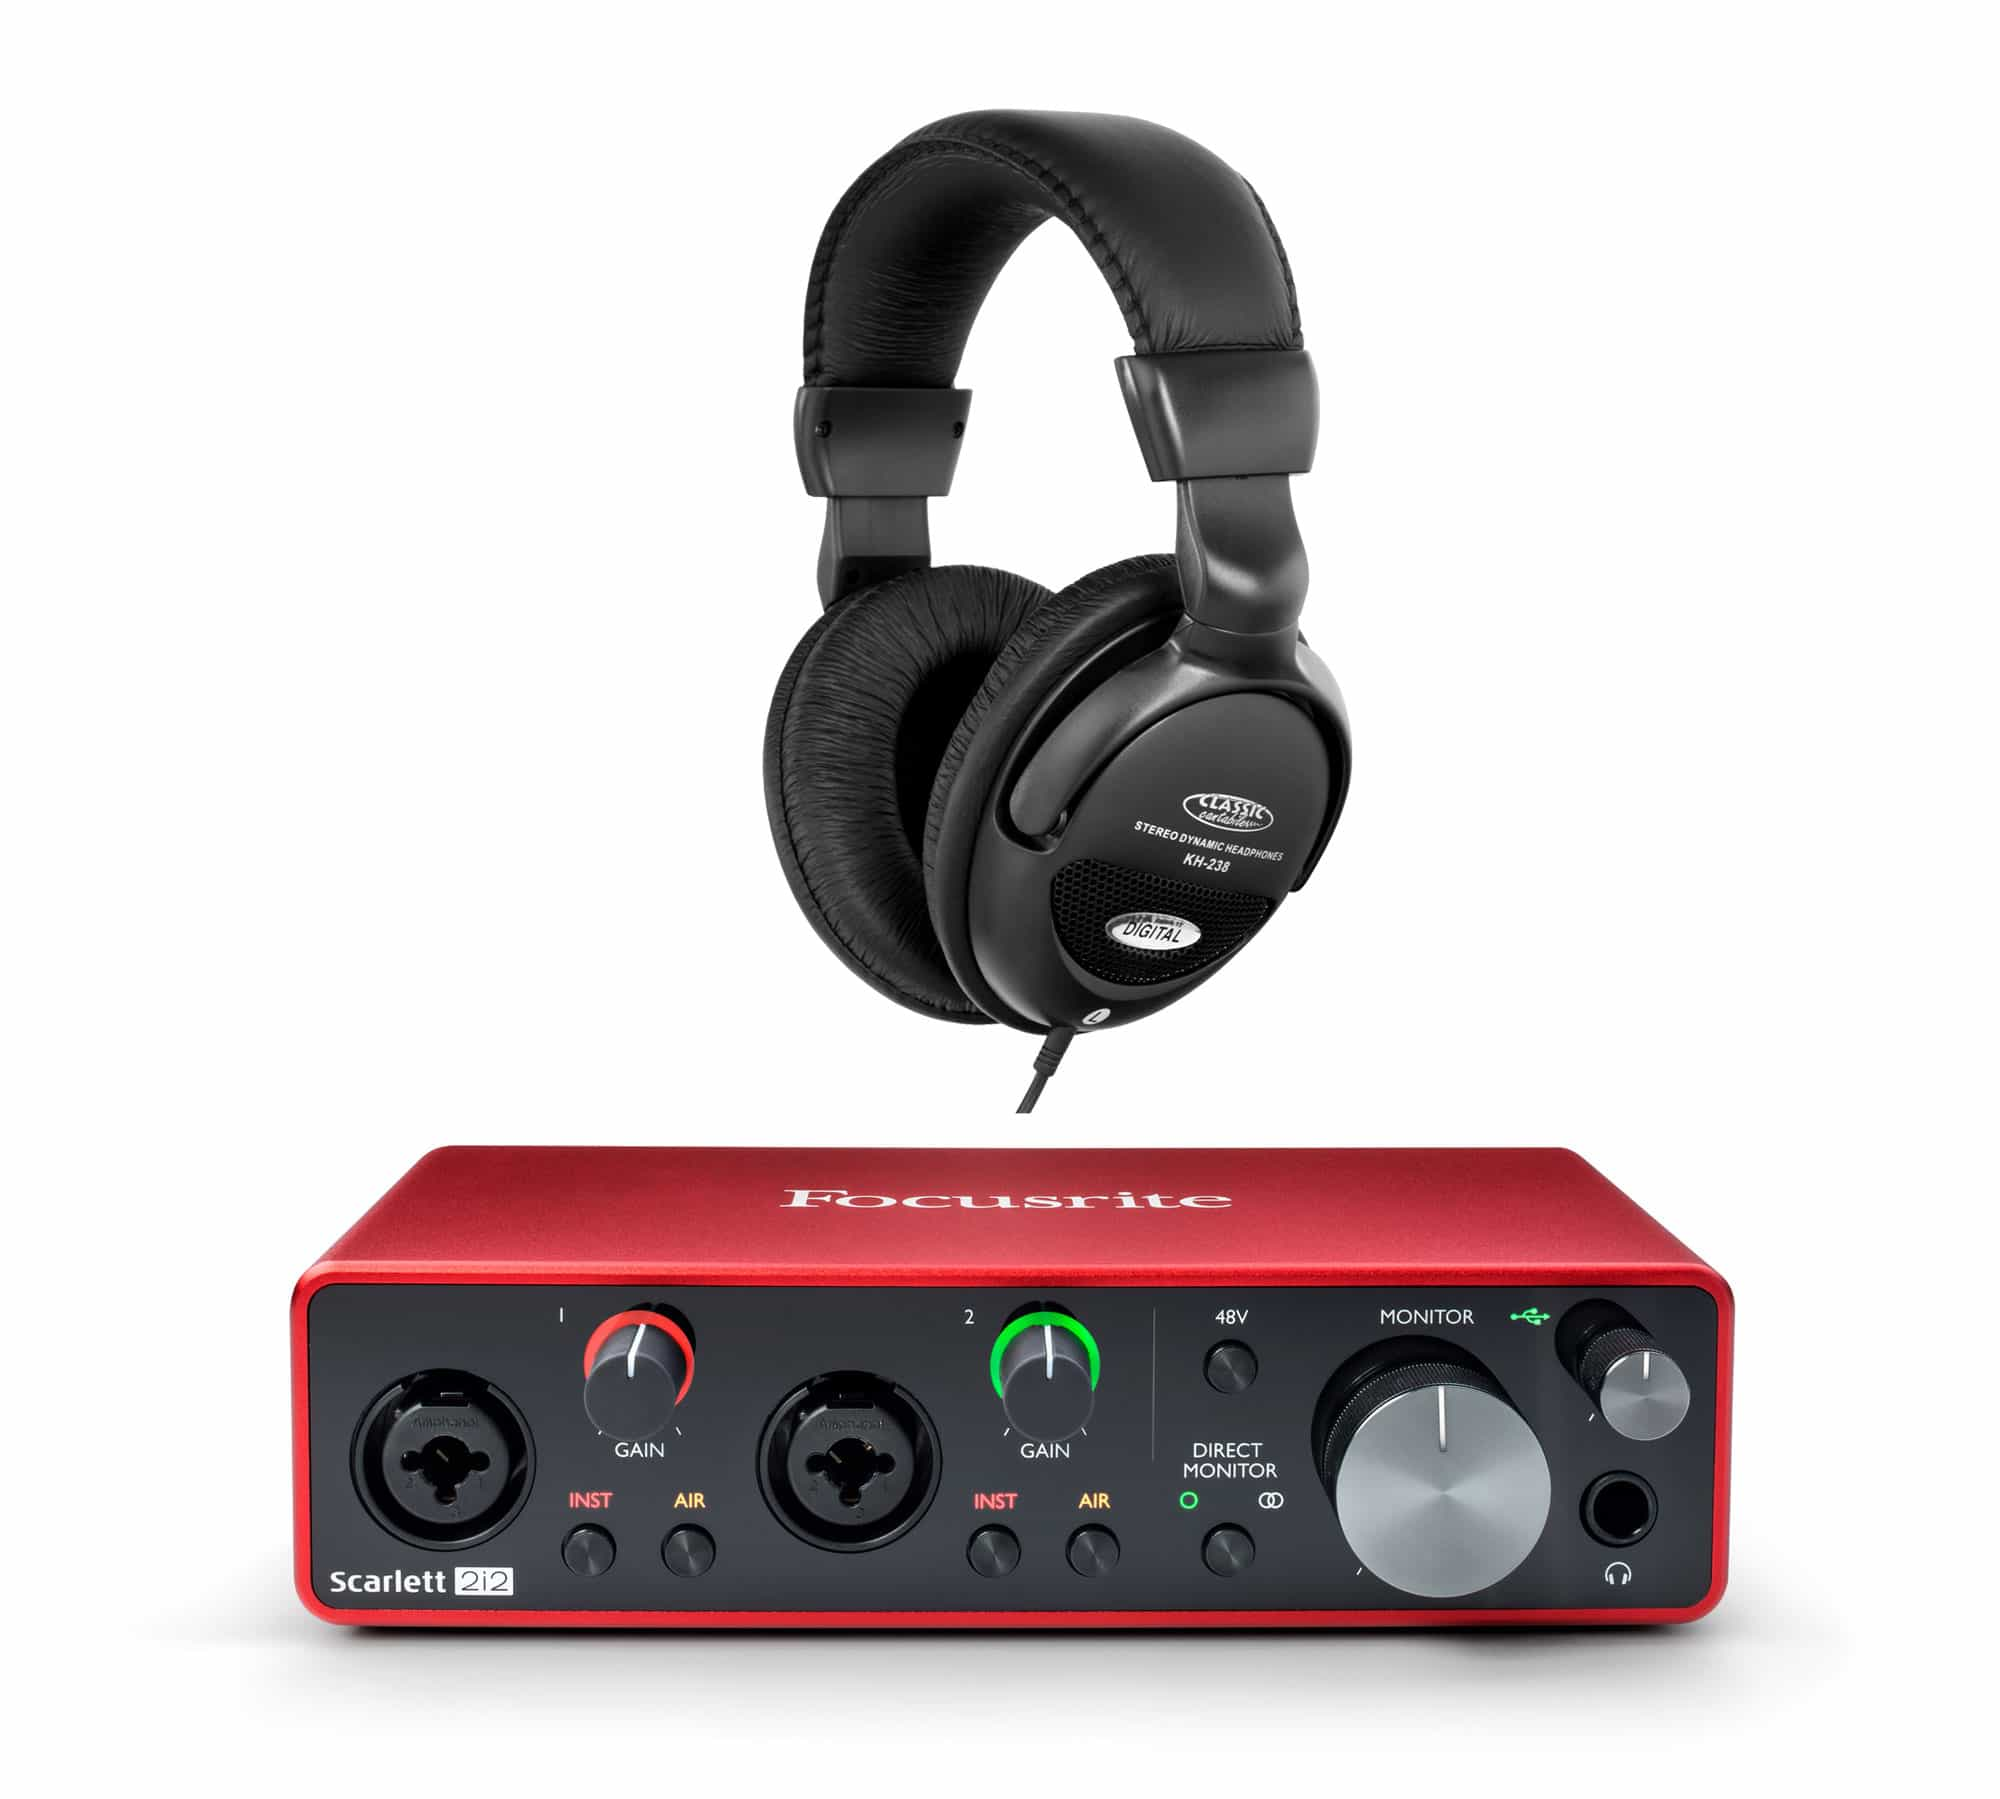 Pchardware - Focusrite Scarlett 2i2 USB Audio Interface Set - Onlineshop Musikhaus Kirstein